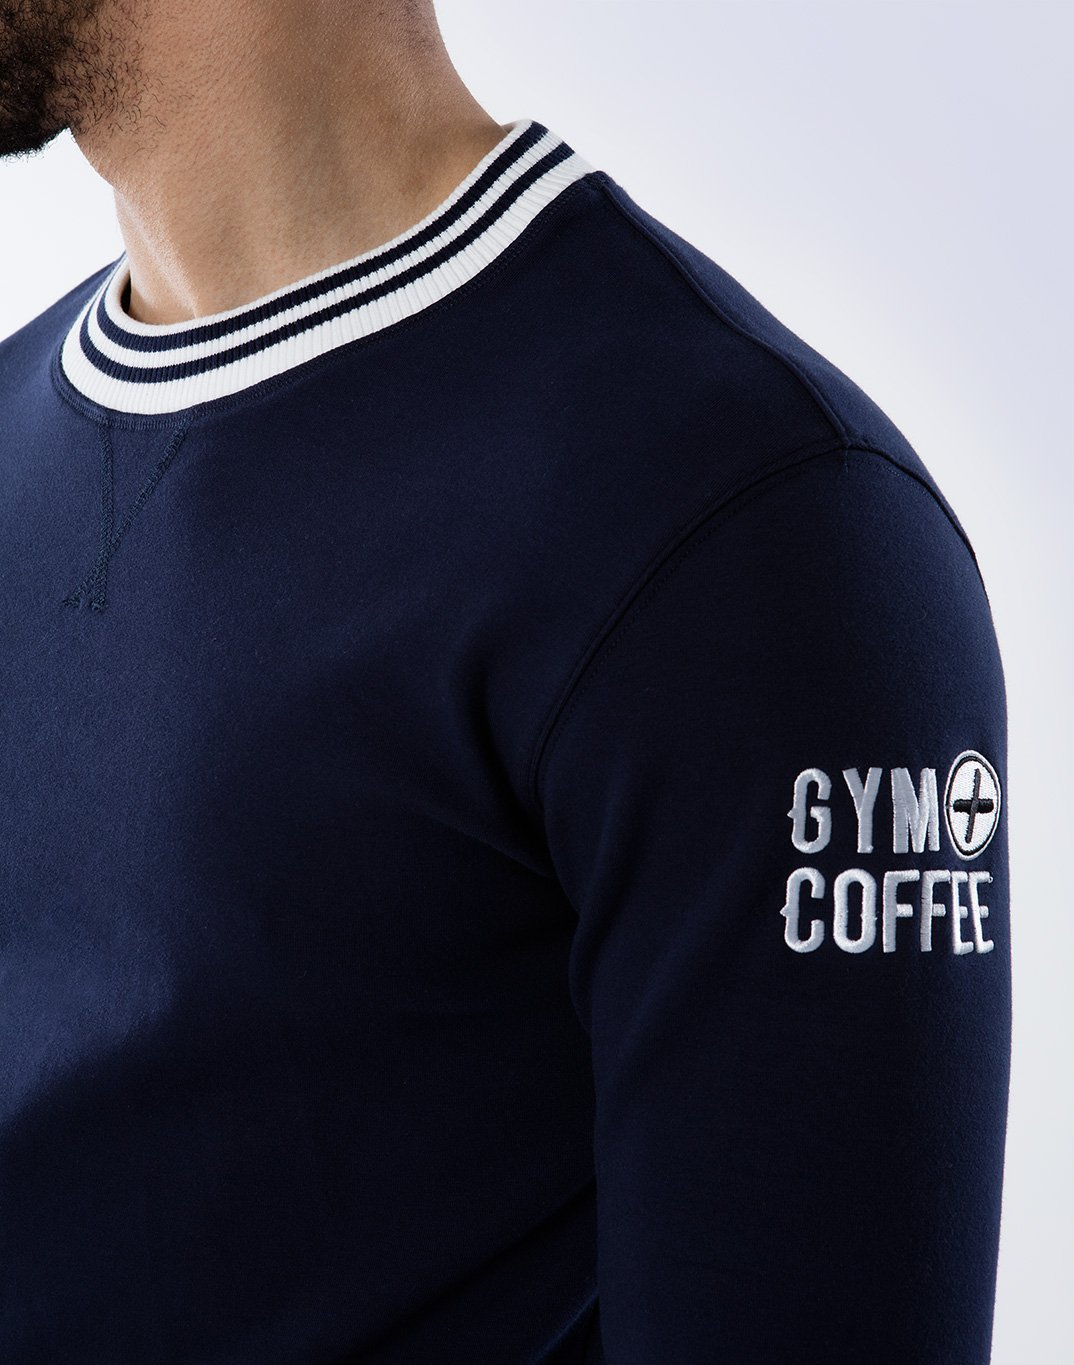 Gym Plus Coffee Long Sleeve Retro UniCrew in Navy Designed in Ireland